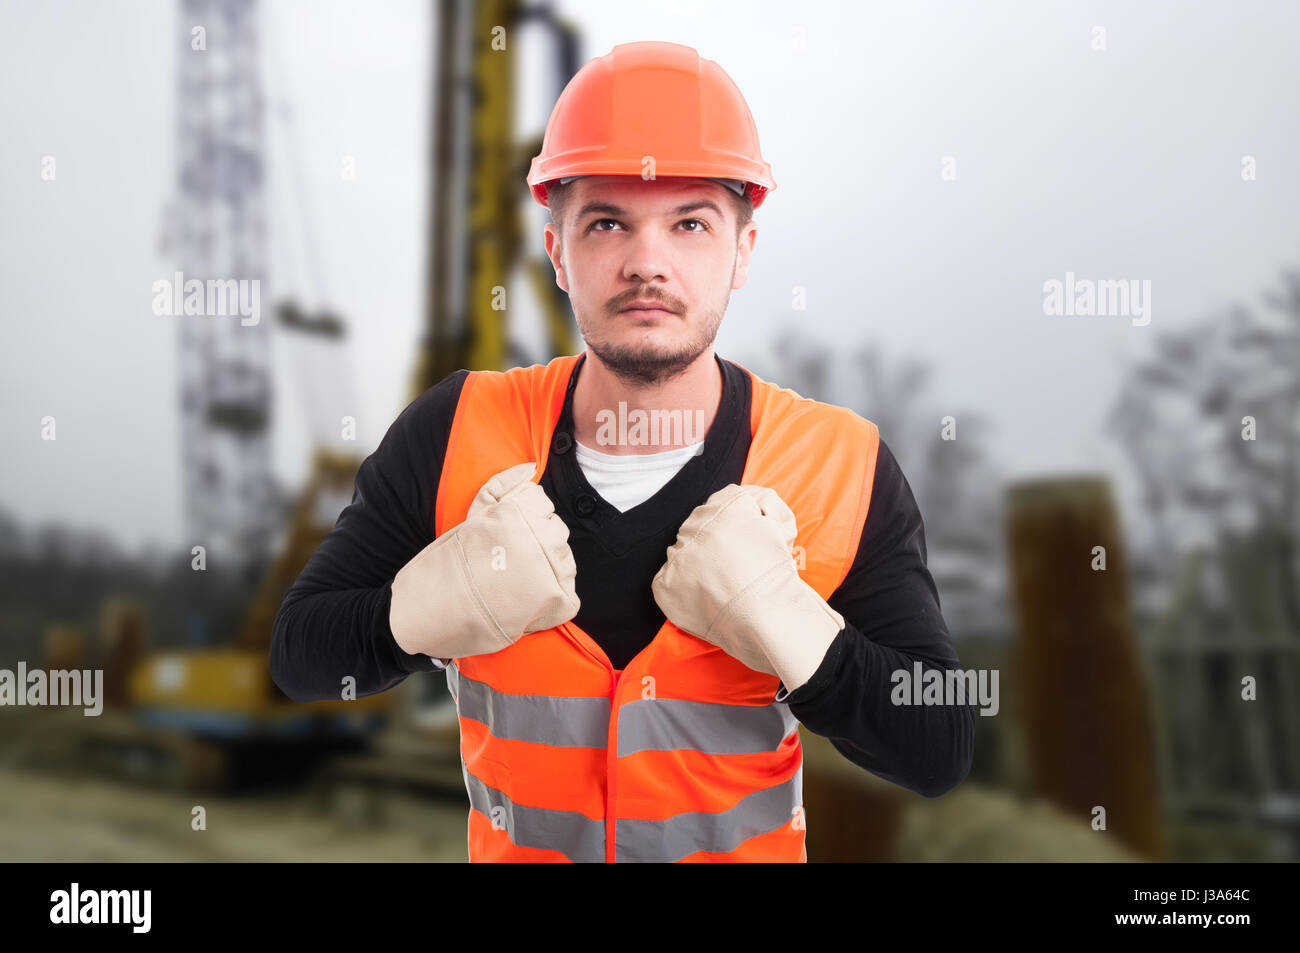 Handsome architect in protection uniform acting like superhero outdoors Stock Photo